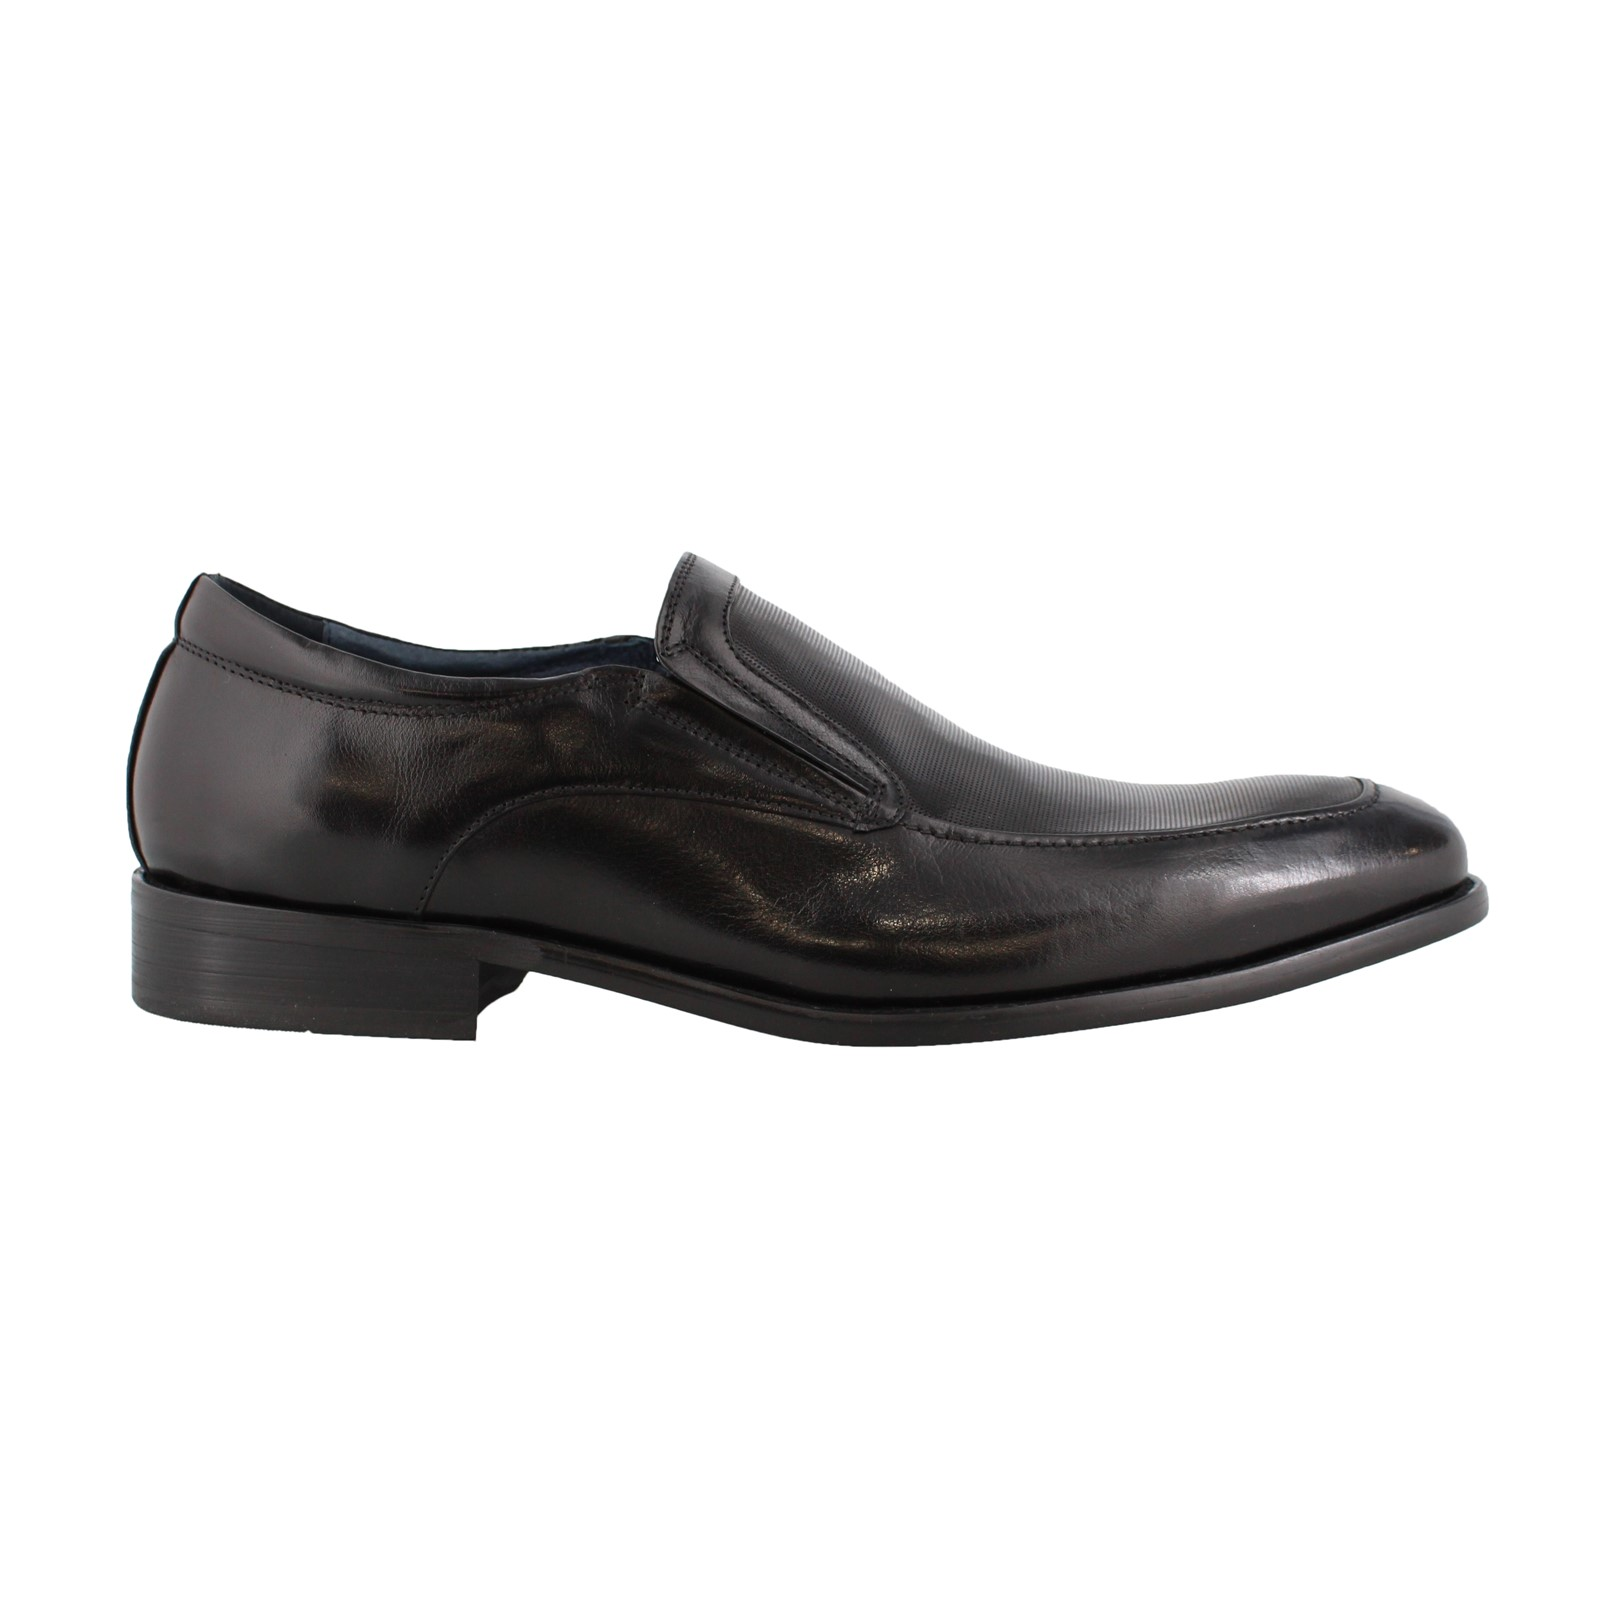 Men's Stacy Adams, Jace Slip on Shoes